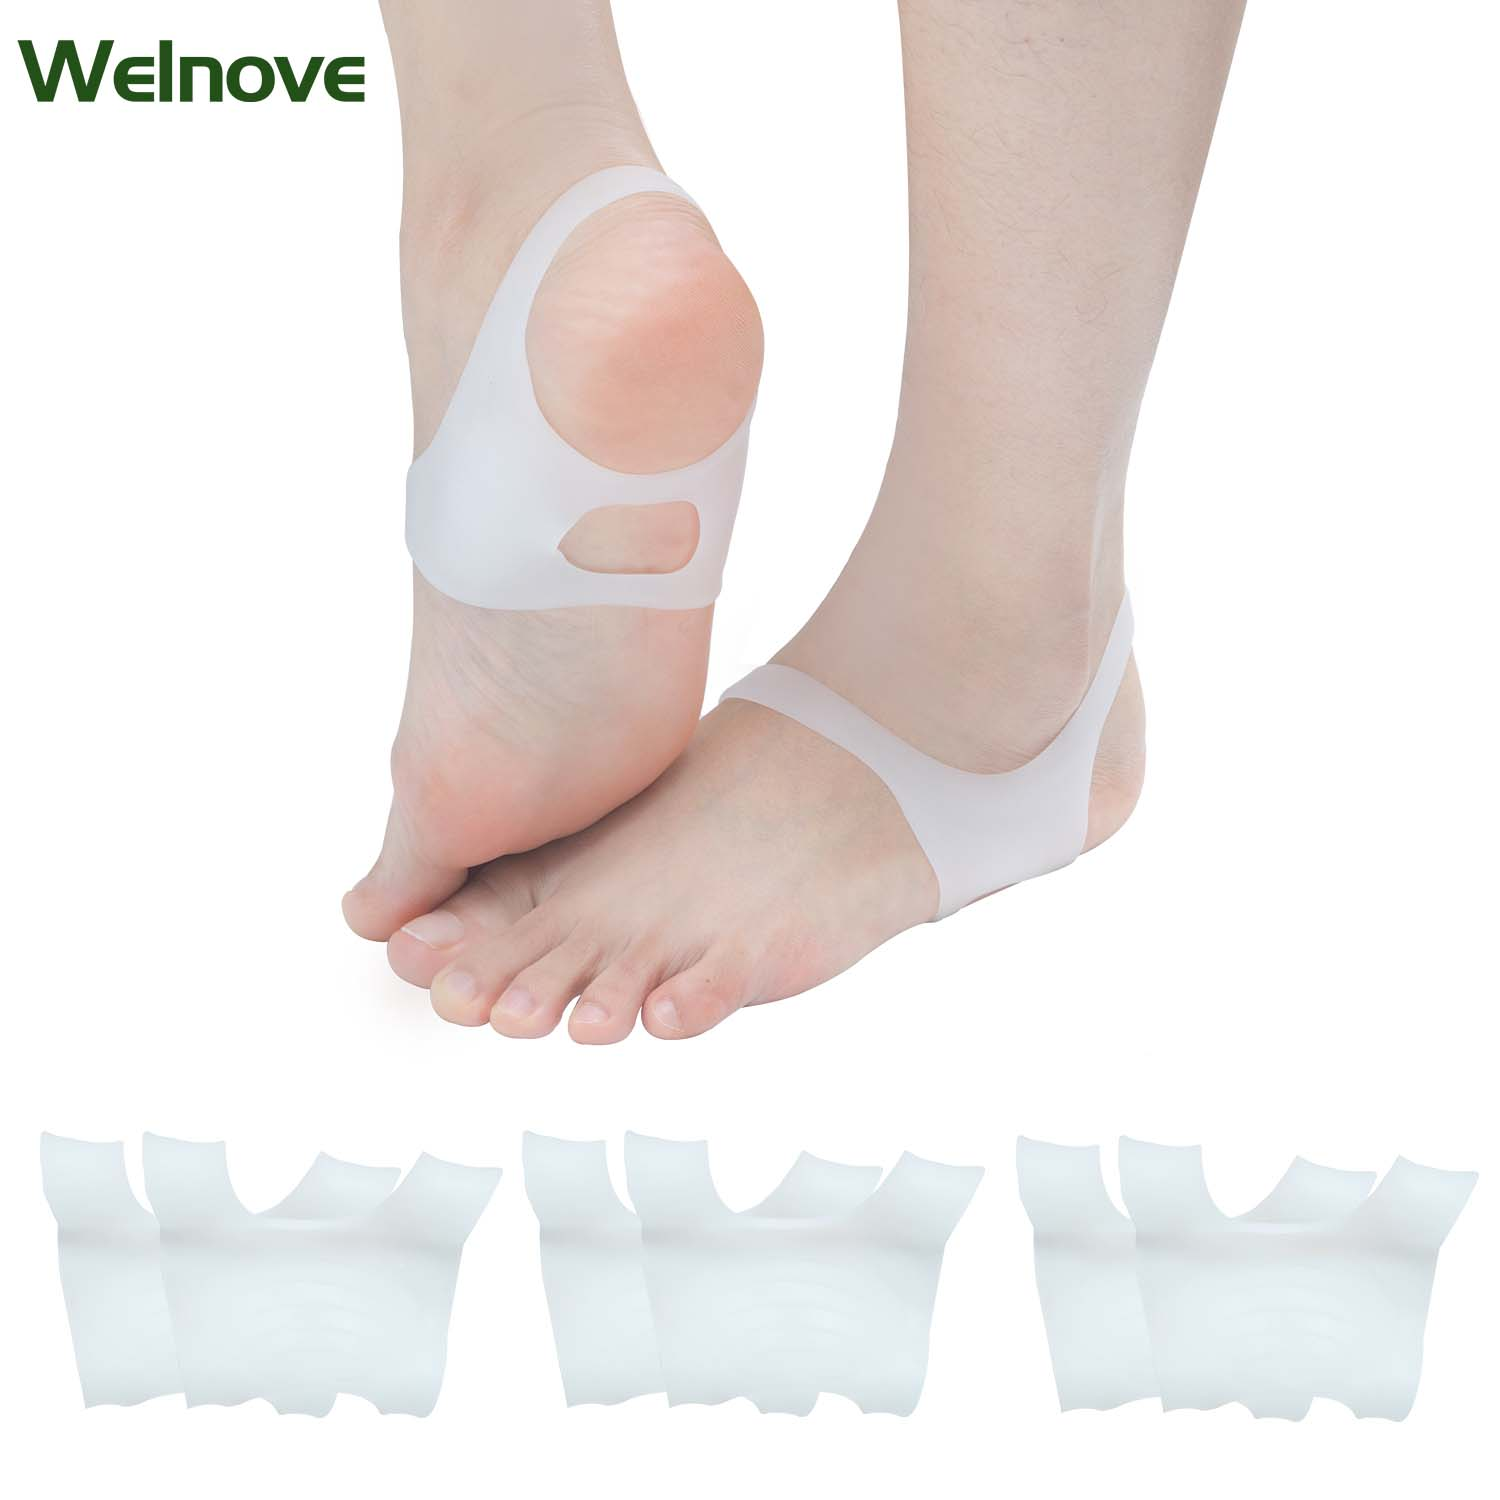 4 Pairs No Slip Shoes For Men And Women Insoles Pads Silicone Insoles Orthopedic Insoles O-type Foot Correction Valgus D1258